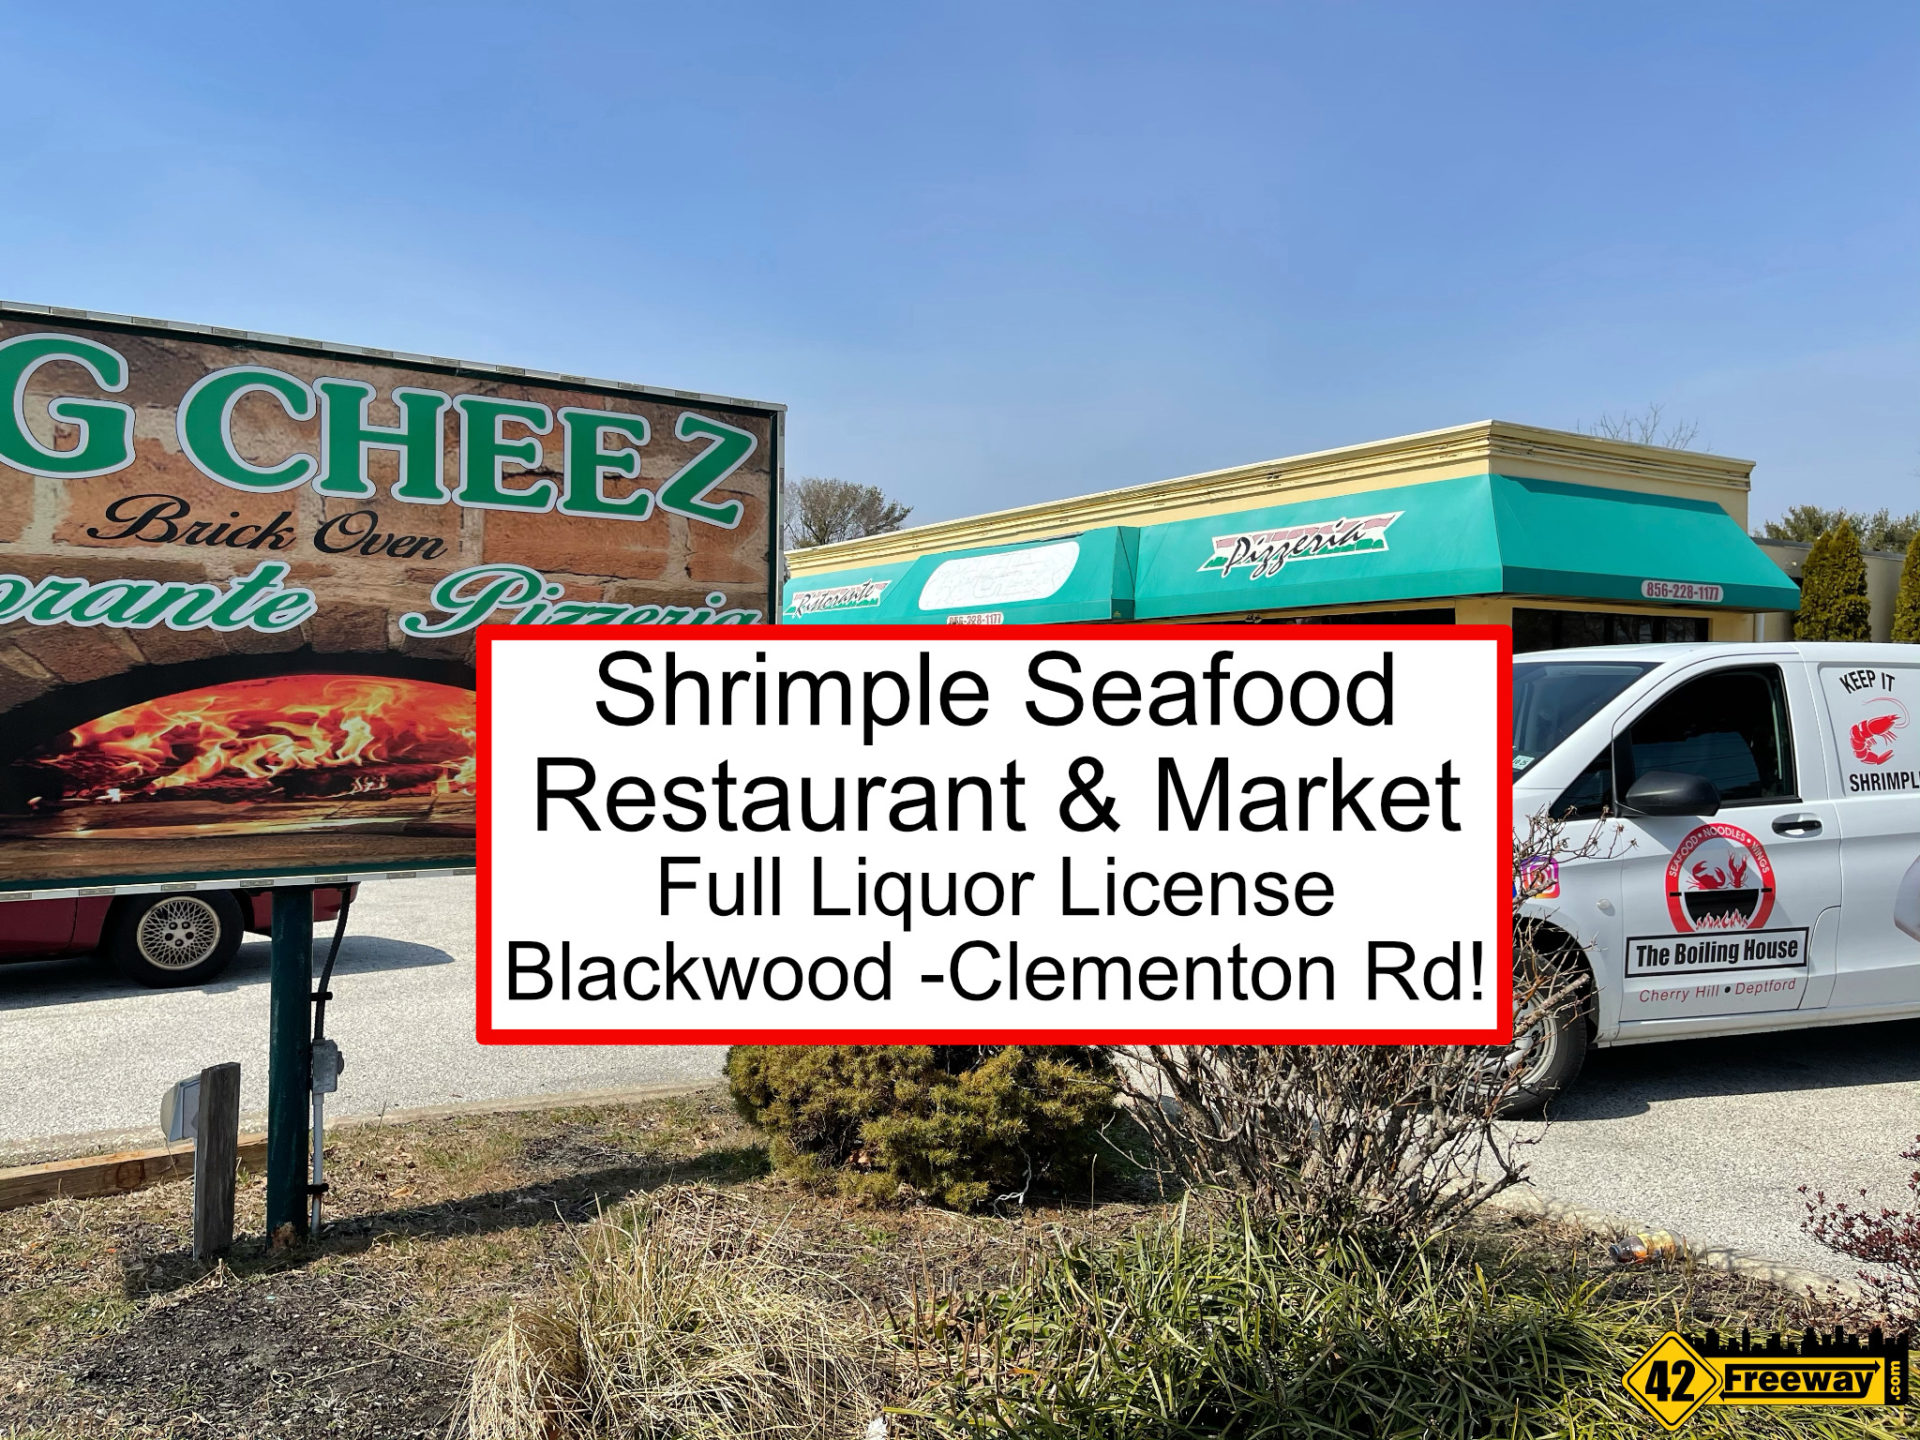 Shrimple Seafood Restaurant and Market Coming To Blackwood Clementon Rd!  Full Liquor License!